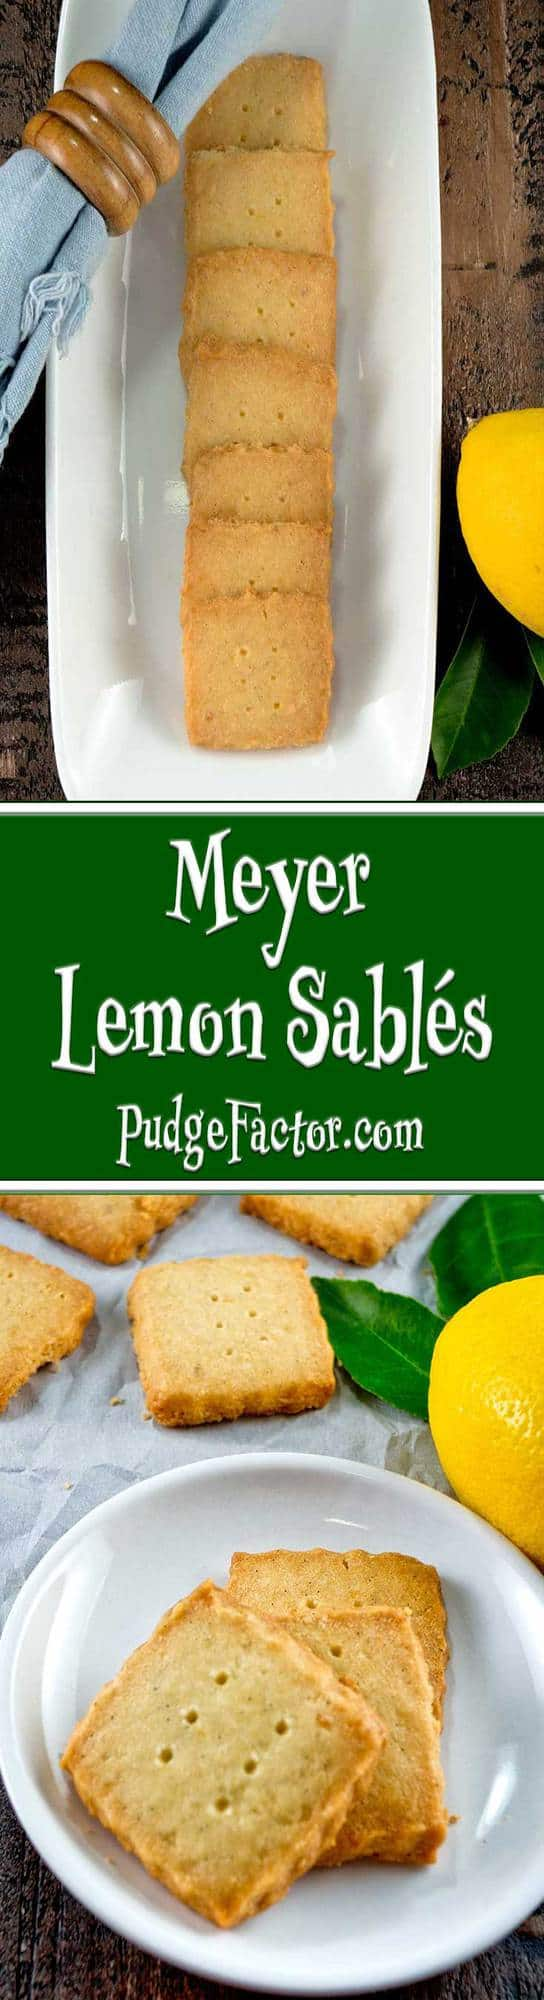 "Meyer Lemon Sablés, with their characteristic ""sandy"" texture, are buttery rich with a delicate hint of lemon from lemon zest. They make the perfect holiday cookie."